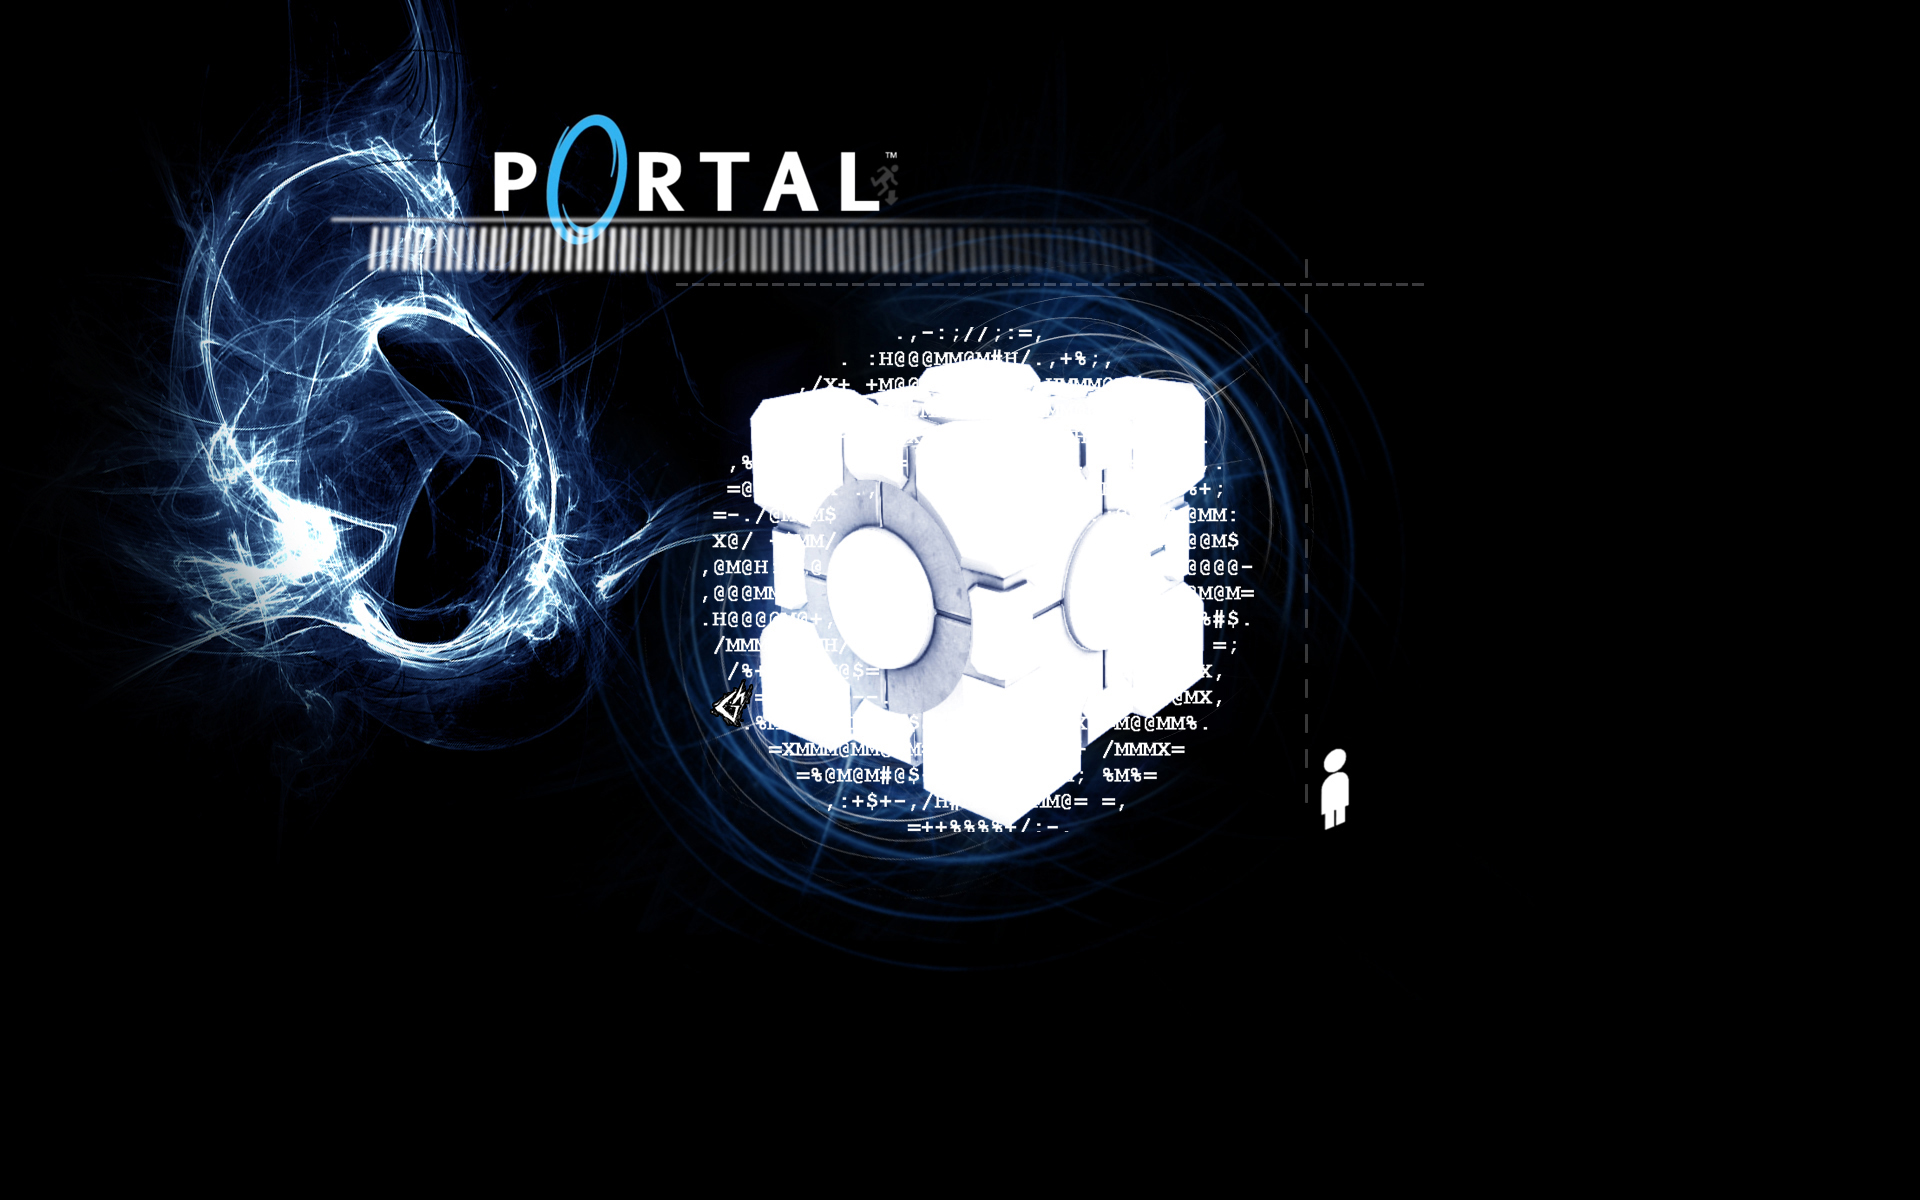 Portal hd wallpaper background image 1920x1200 id 42405 wallpaper abyss - Games hd wallpapers 1920x1200 ...